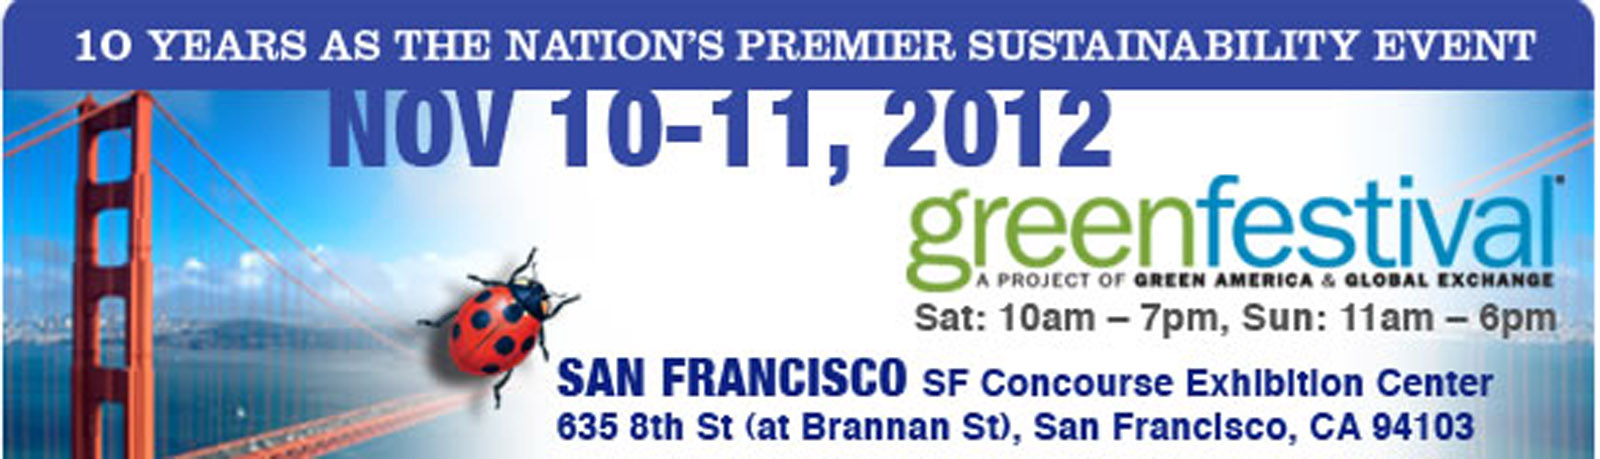 SF-2012-header-city-section